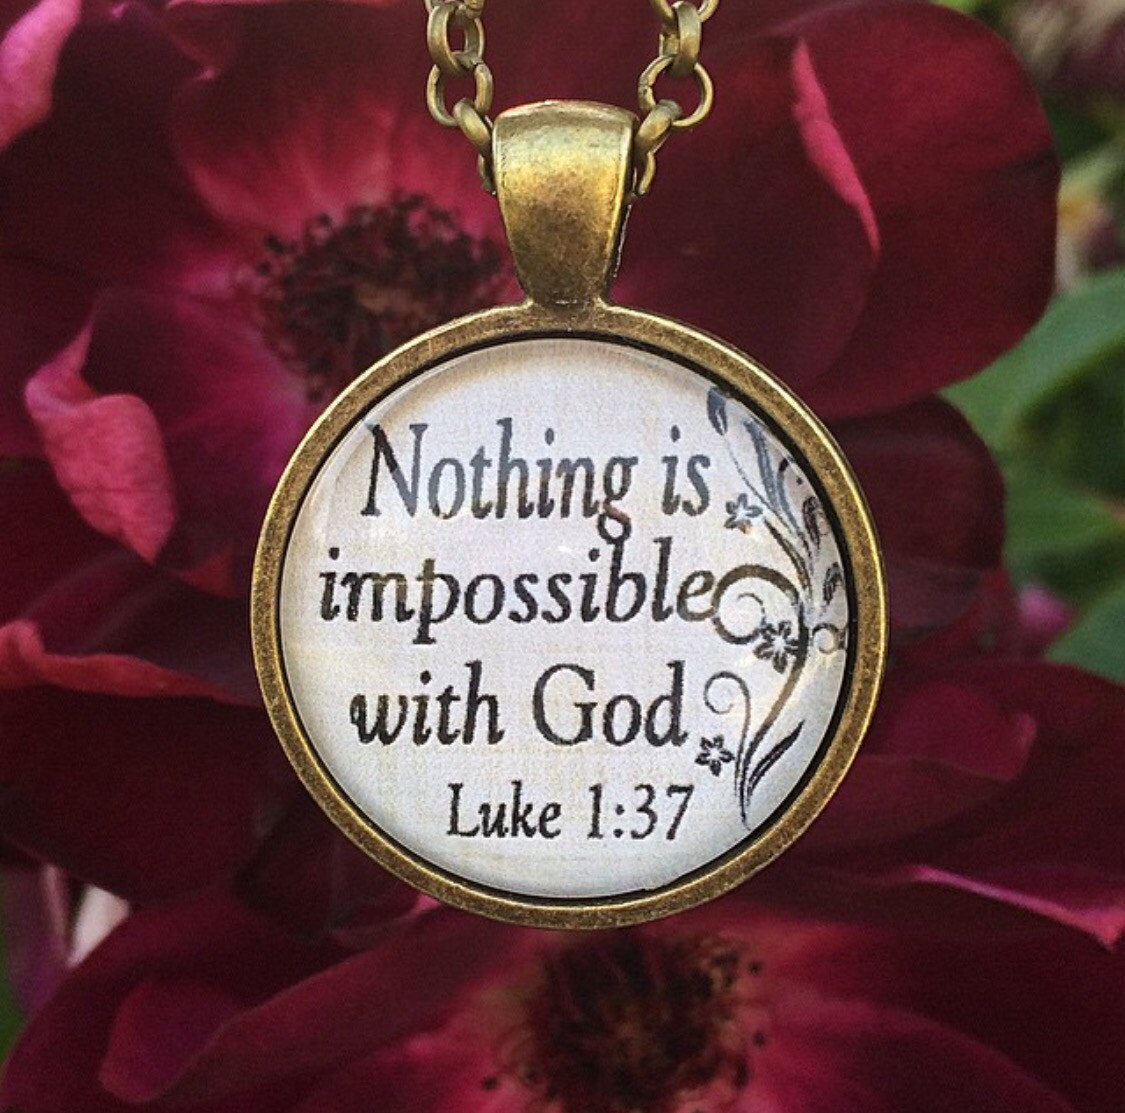 Nothing is impossible with God Luke 1:37 Necklace - Redeemed Jewelry